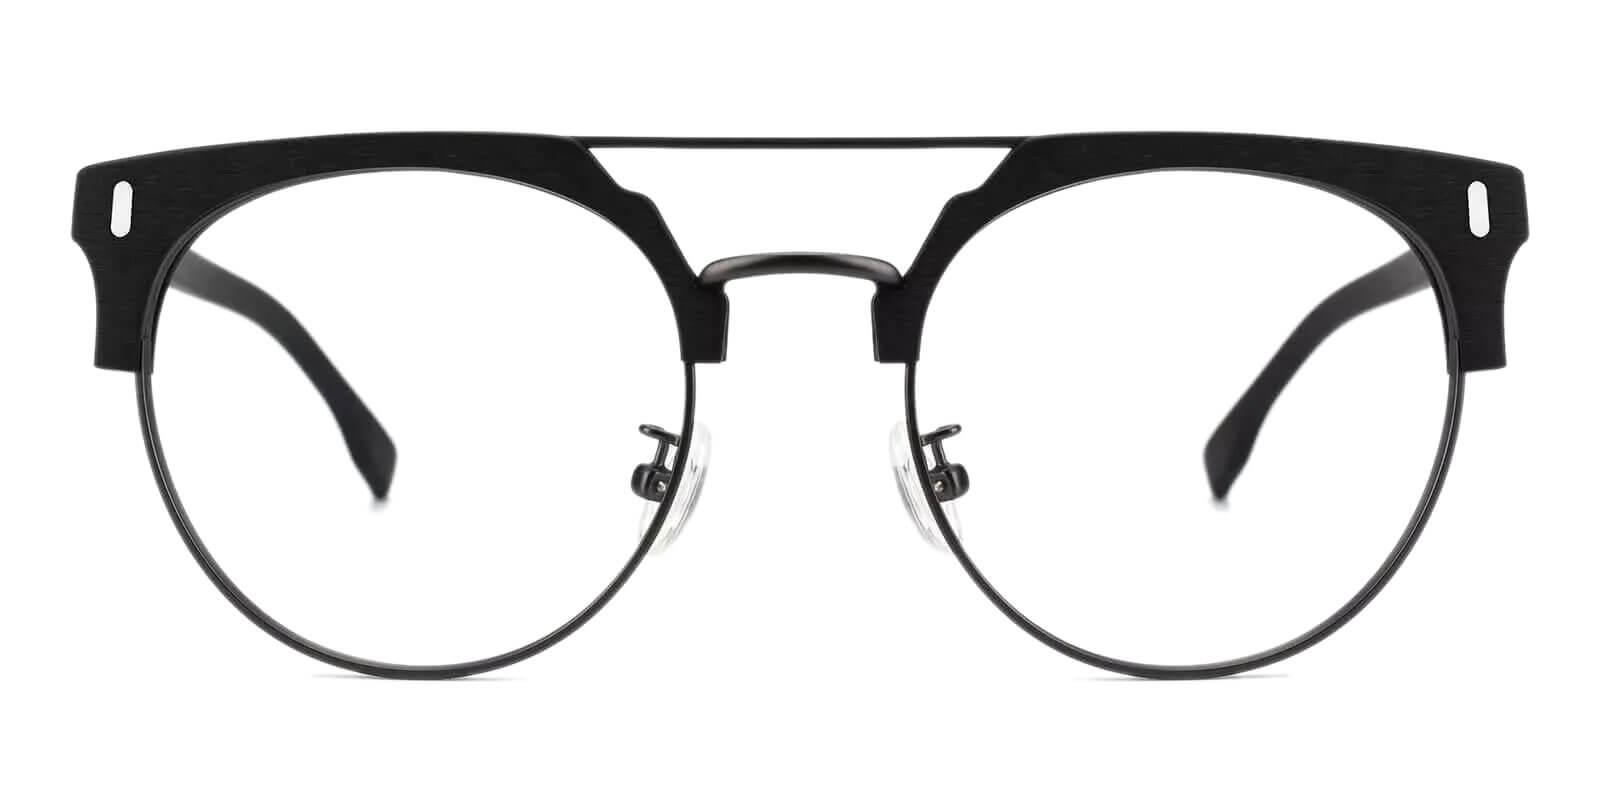 Woonsocket Black Combination NosePads , Eyeglasses Frames from ABBE Glasses